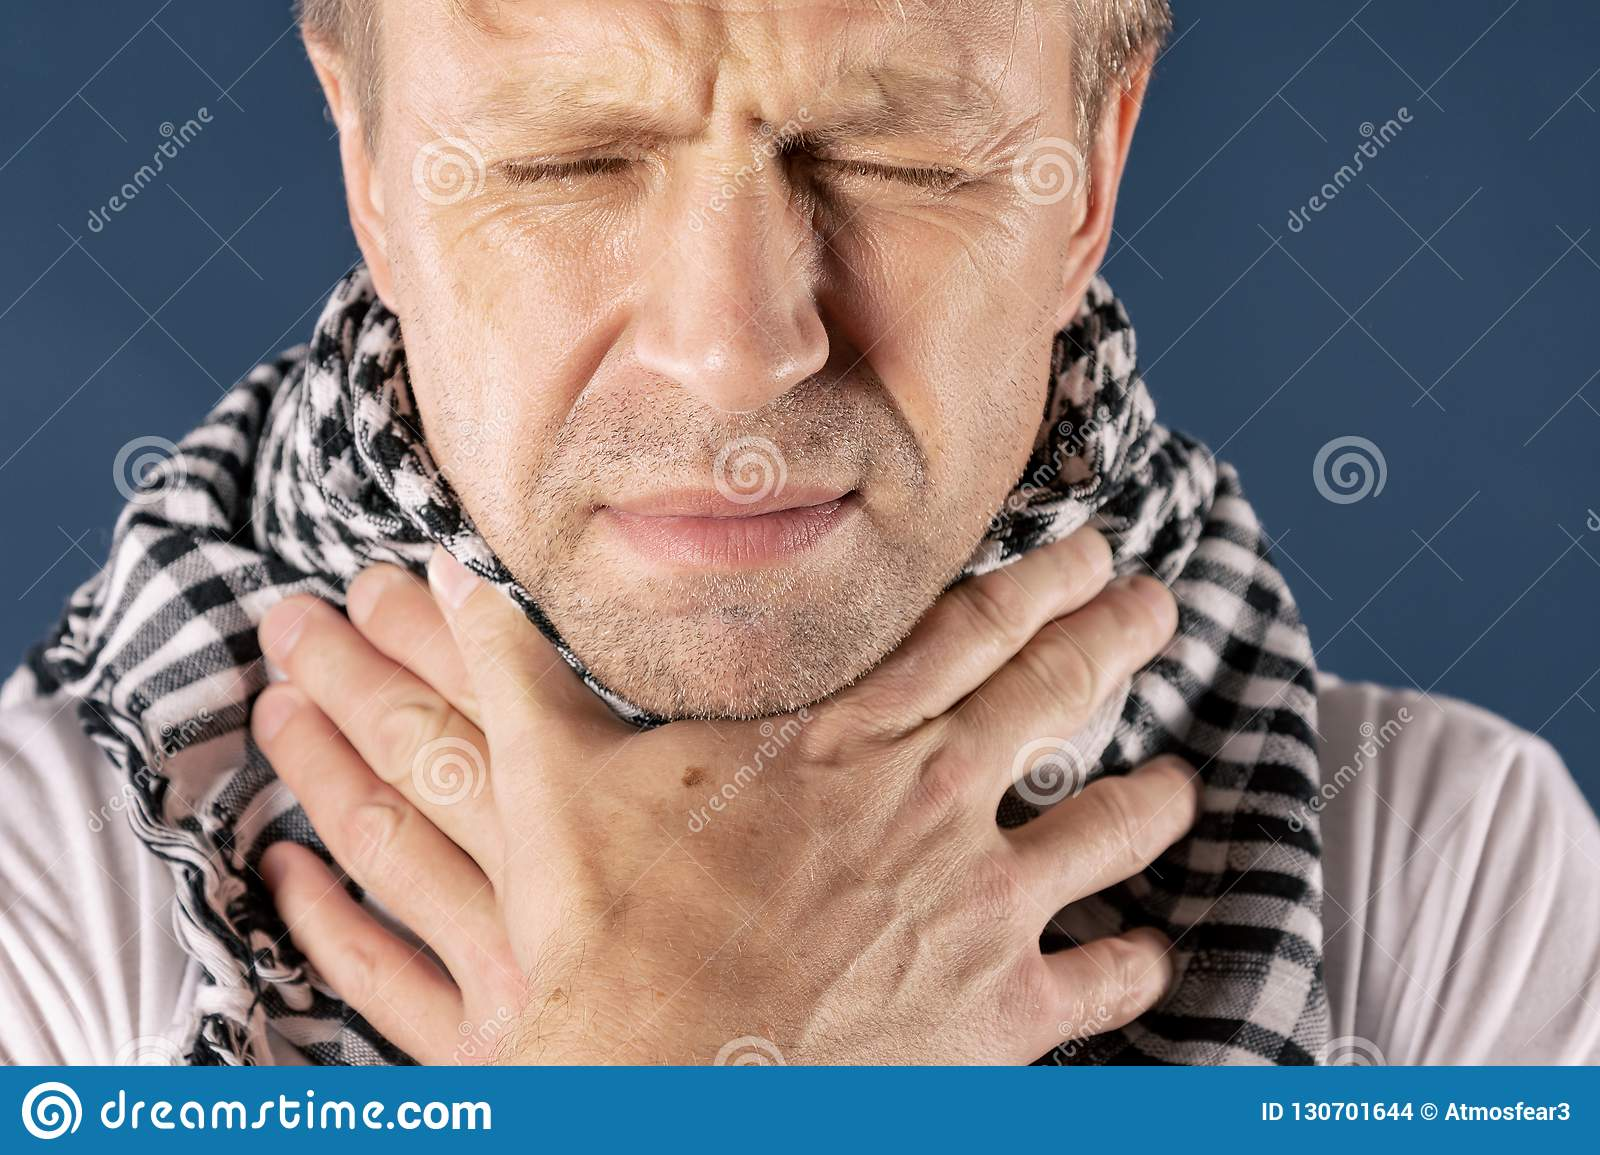 Man with cold and flu illness suffering from sore throat. Blue background